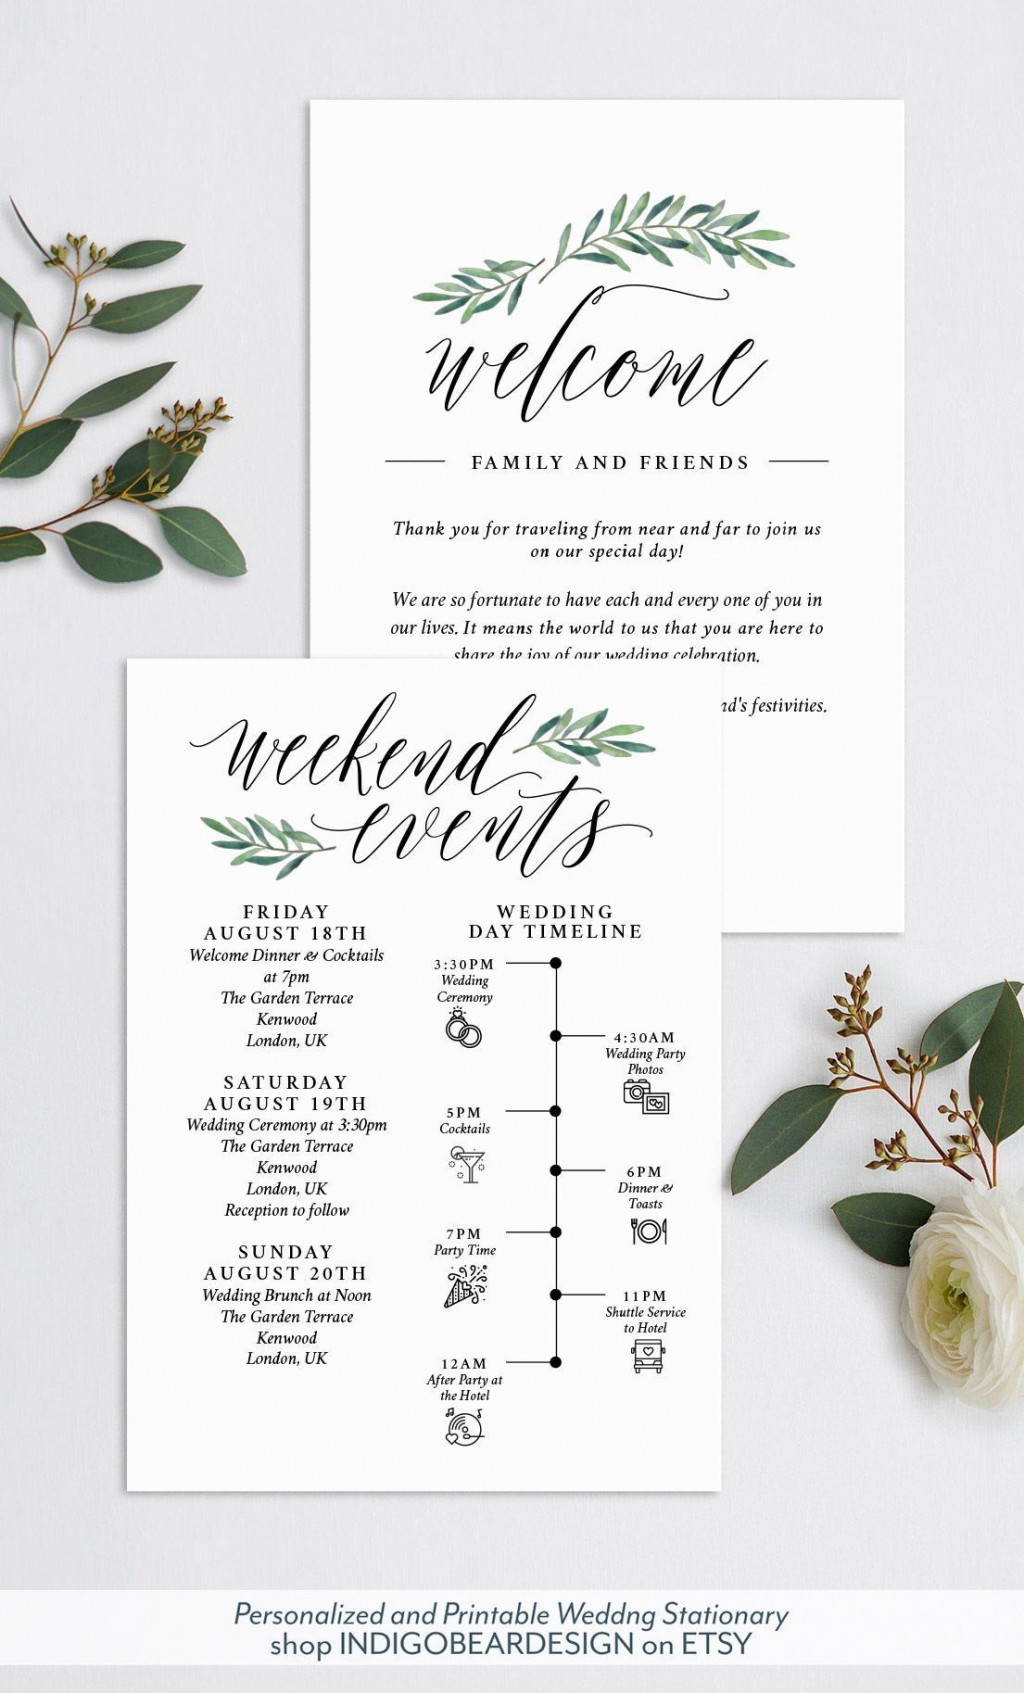 005 Wondrou Destination Wedding Welcome Letter And Itinerary Template High Resolution Large